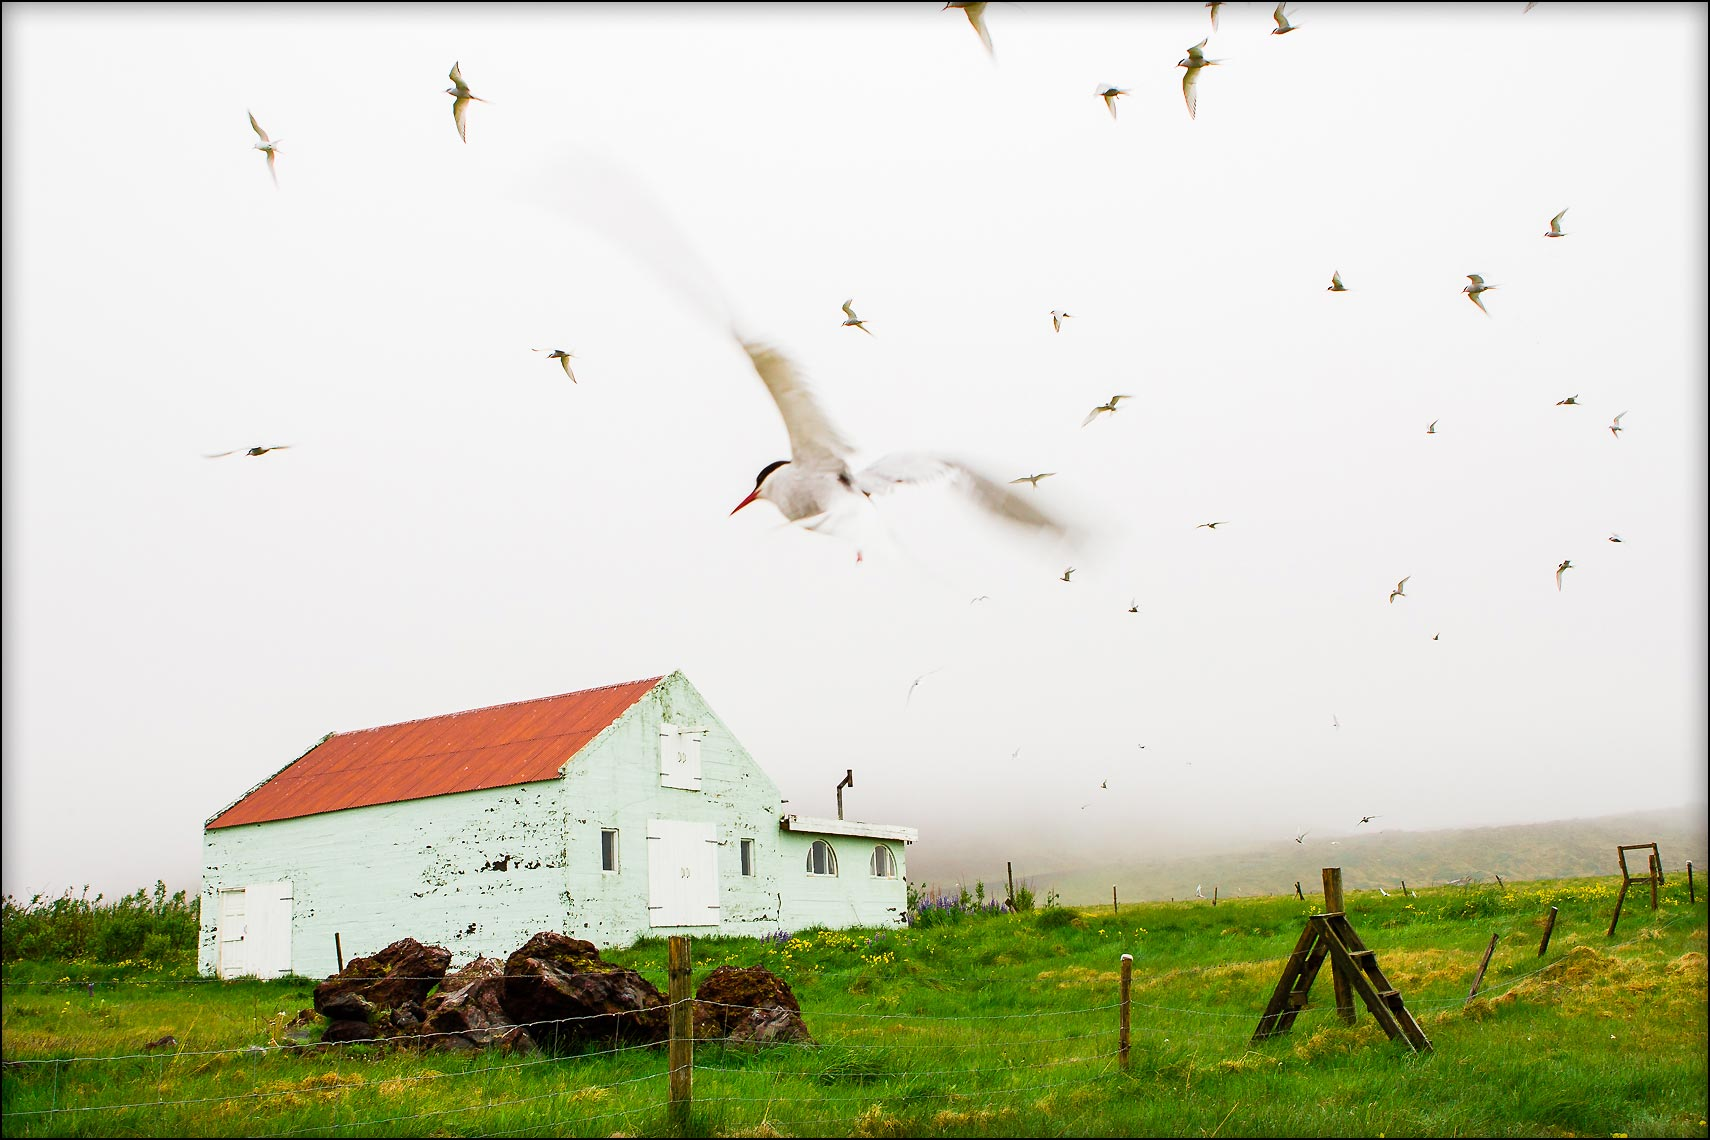 Patrick_Cavan_Brown_Iceland_Artic_Terns-.jpg